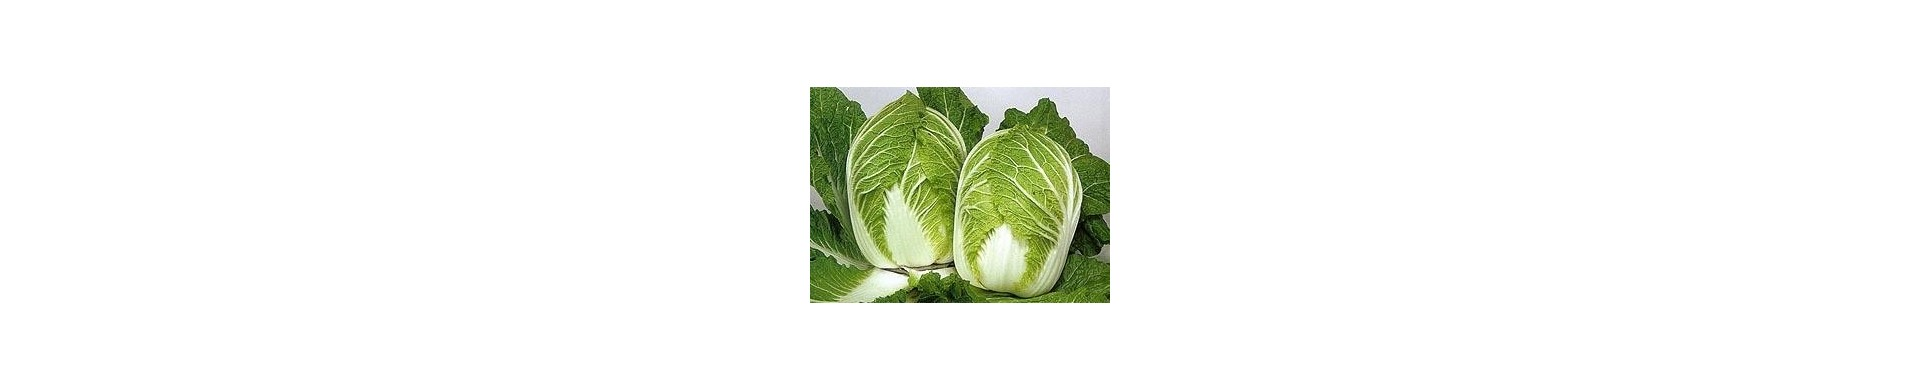 Plant cabbage - Buy cabbage plants